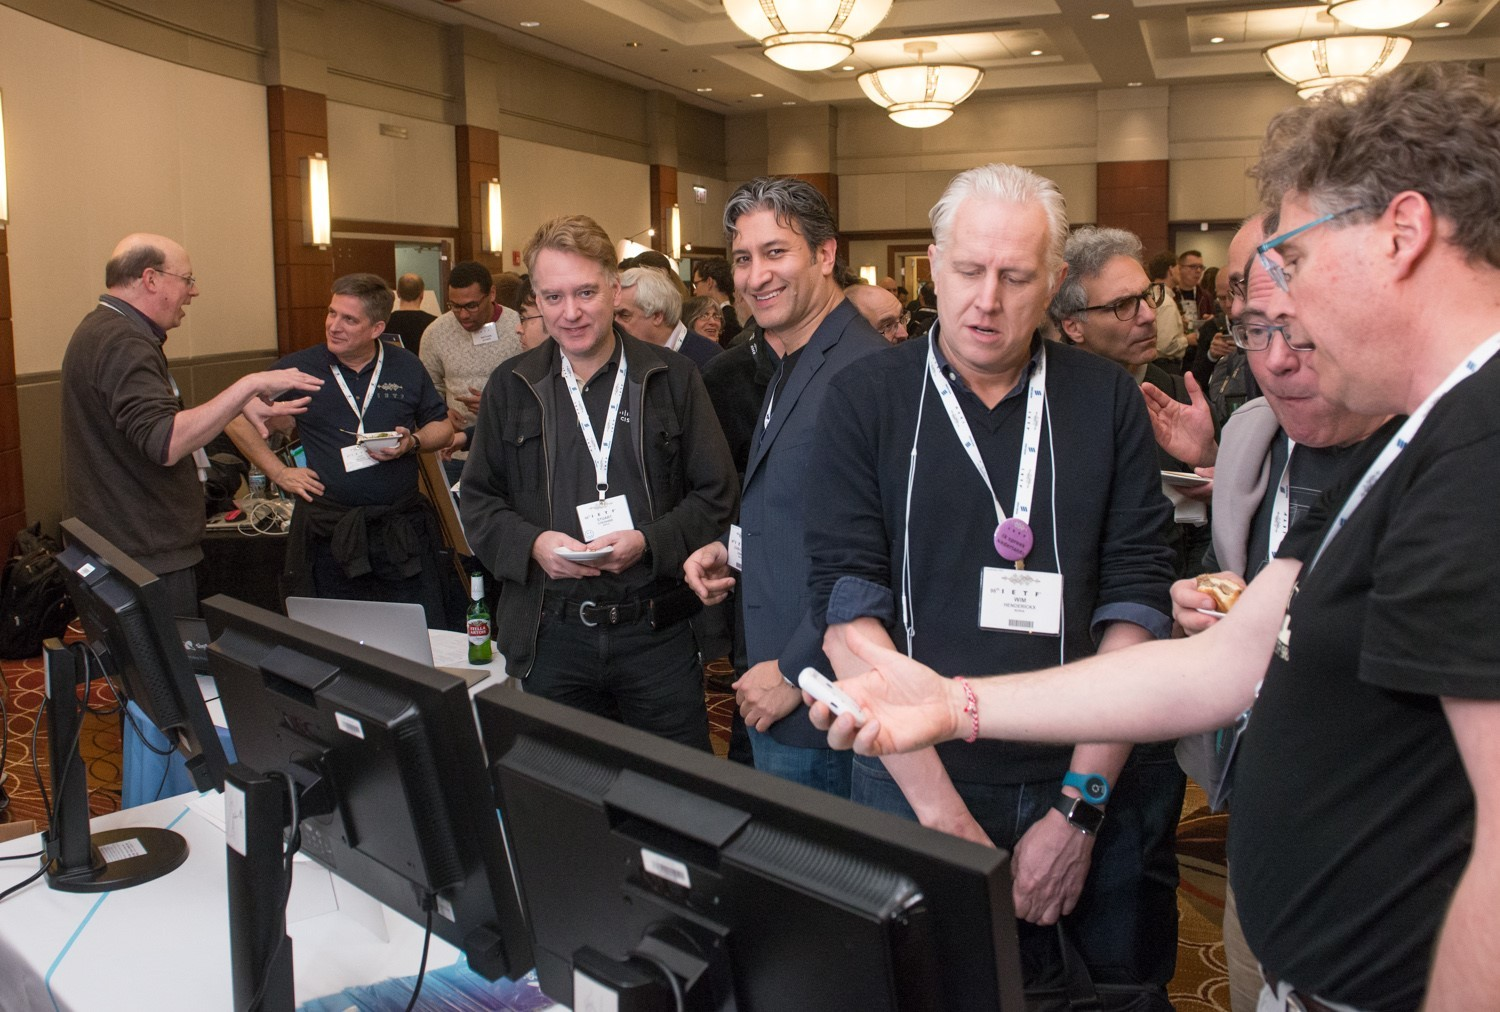 Juan Carlos Zuniga, senior standardisation expert at Sigfox, and co-chair of the IETF IntArea working group, and Stuart Cheshire (Apple), inventor of the Bonjour protocol (AirPlay, AirPrint, AirDrop, etc.), during the Sigfox demonstration at IETF. ©Stonehousephotographic/IETF